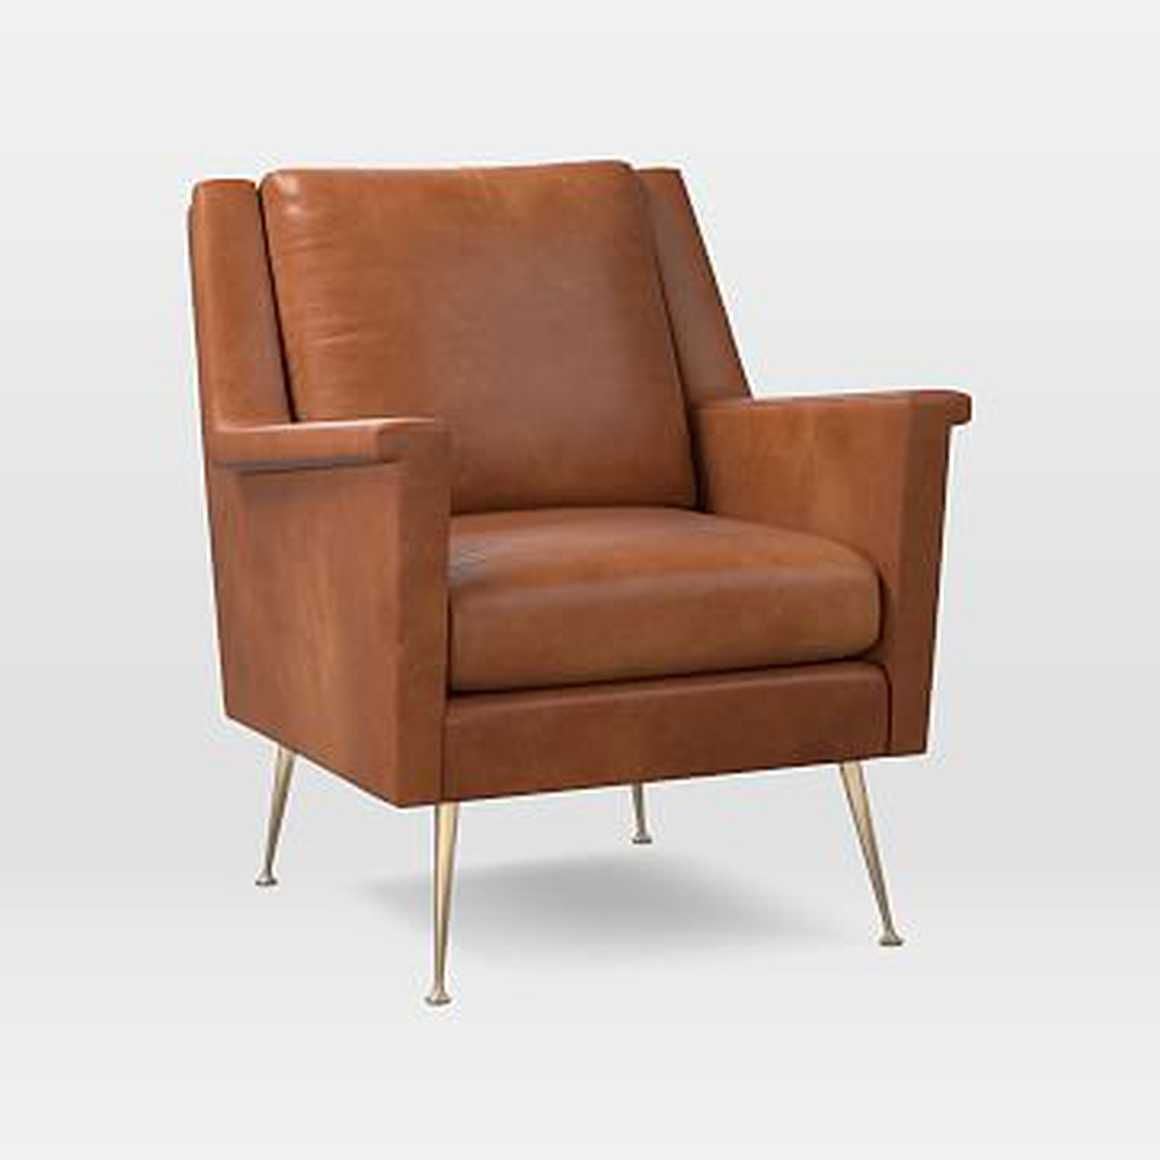 Carlo midcentury chair leather saddle brass by west